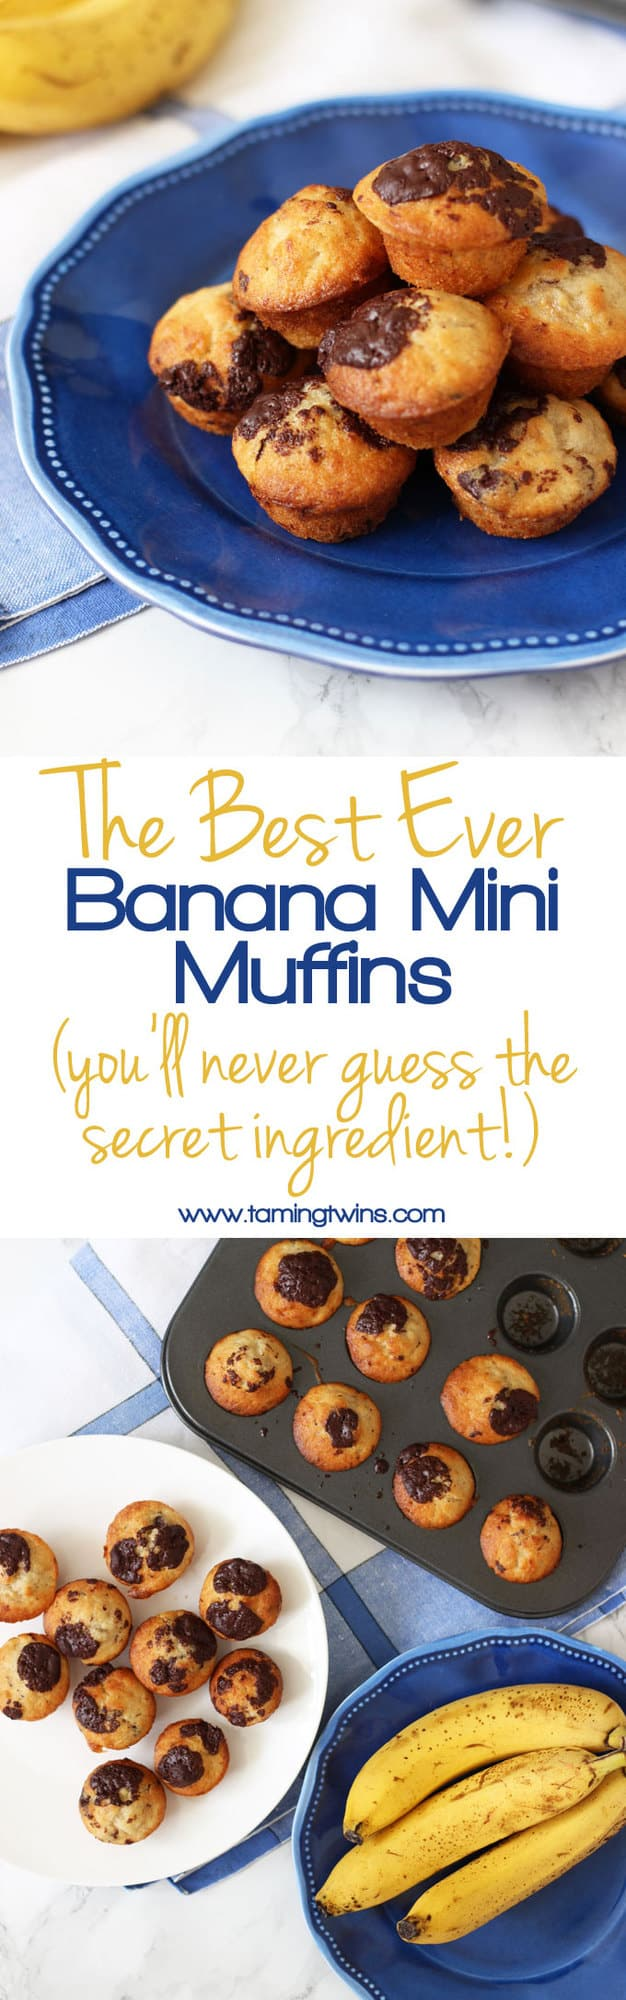 Mini banana muffins, made with a secret ingredient! Made with no need for oil or eggs, delicious, light, packed with chocolate chips, these little cakes make a super afternoon snack or breakfast treat. https://www.tamingtwins.com